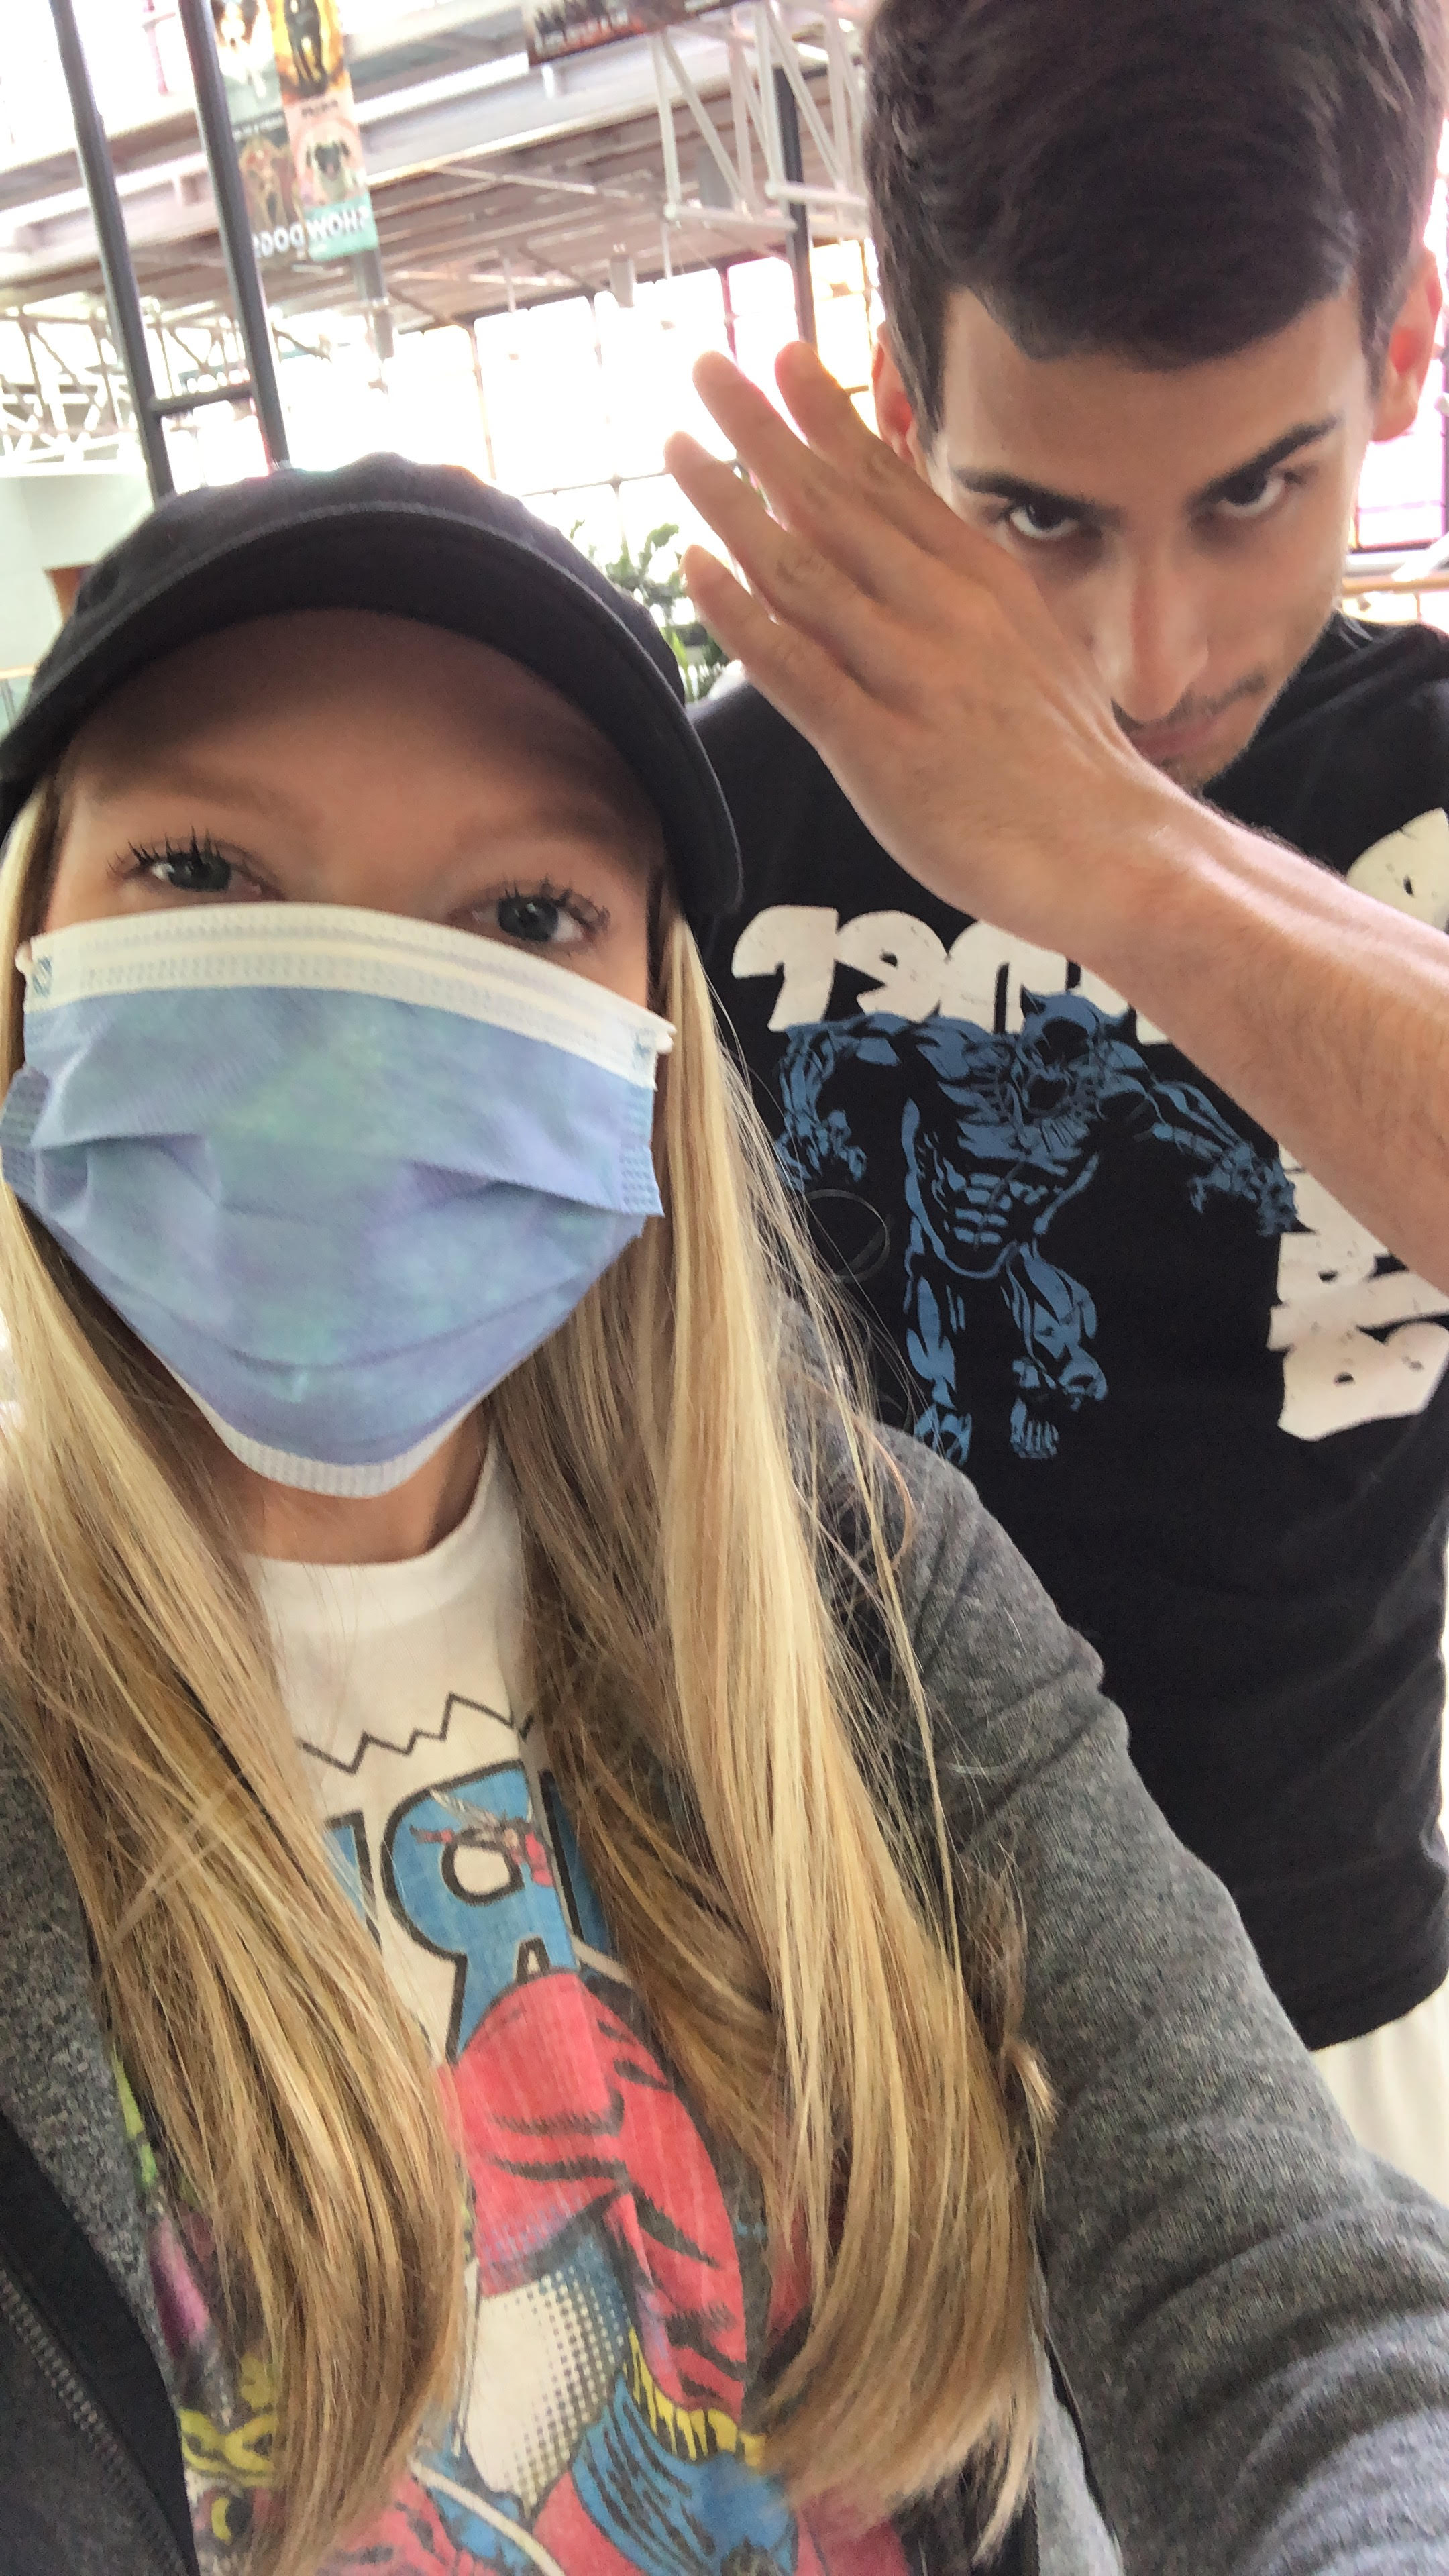 Halfway there - New challenges, same fight.Week OneSomething very very important to Timmy and I happened the day after my infusion this round. INFINITY WAR CAME OUT IN THEATERS. Literally nothing was going to stop me from seeing this movie on opening day. Peep that cute selfie of me in a mask and Marvel t-shirt for proof. Yep, I went straight from getting fluids to seeing the movie! I'll keep this blog a Marvel spoilers free zone, don't worry. Why the mask though? Well, we found out during my infusion day that my white blood cell counts had dropped pretty low, which means I was super susceptible to infection. The doctors let me get my treatment but made me promise to wear a mask out and come back to get labs drawn the following week. My counts dropped even more after treatment and I had to get a Neulasta shot to boost them.Week TwoBefore heading to University of Florida for my little brother's graduation, I had to go back to the docs to check in on my counts. The Neulasta shot that I had been given wasn't kicking in yet and my white blood cell counts were still super low. We were already taking precautions to keep me safe and healthy for the graduation, but my doctor also ordered me to get a Neupogen shot to boost the counts even quicker. More about graduation weekend in a separate post, but after returning home to Orlando, I had labs drawn again and we found out the shots worked perfectly! I still need to be cautious but my doctors are happy with where my counts are.Week ThreeI was feeling well enough to go back to my apartment in Miami for a few days. I only slept there 2 nights but I was excited to be able to go back for even 48 hours, see my coworkers and go out to a delicious team dinner at KYU in Wynwood. I was also stoked to receive a promotion in my annual review! It's nice to know that my hard work is being recognized, especially through all the tough times I've been going through personally the past several months.Another bright spot? I won my company's Summer Vacation Award! We do this every year and I honestly never thought I'd win. Across all of our 11 offices, I received the most nominations and (once I'm feeling better) will be taking a vacation courtesy of my company!! I can't wait to use this trip to celebrate the end of chemo and Timmy and I are already having lots of fun thinking of where to go... any ideas? Let me know in the comments!